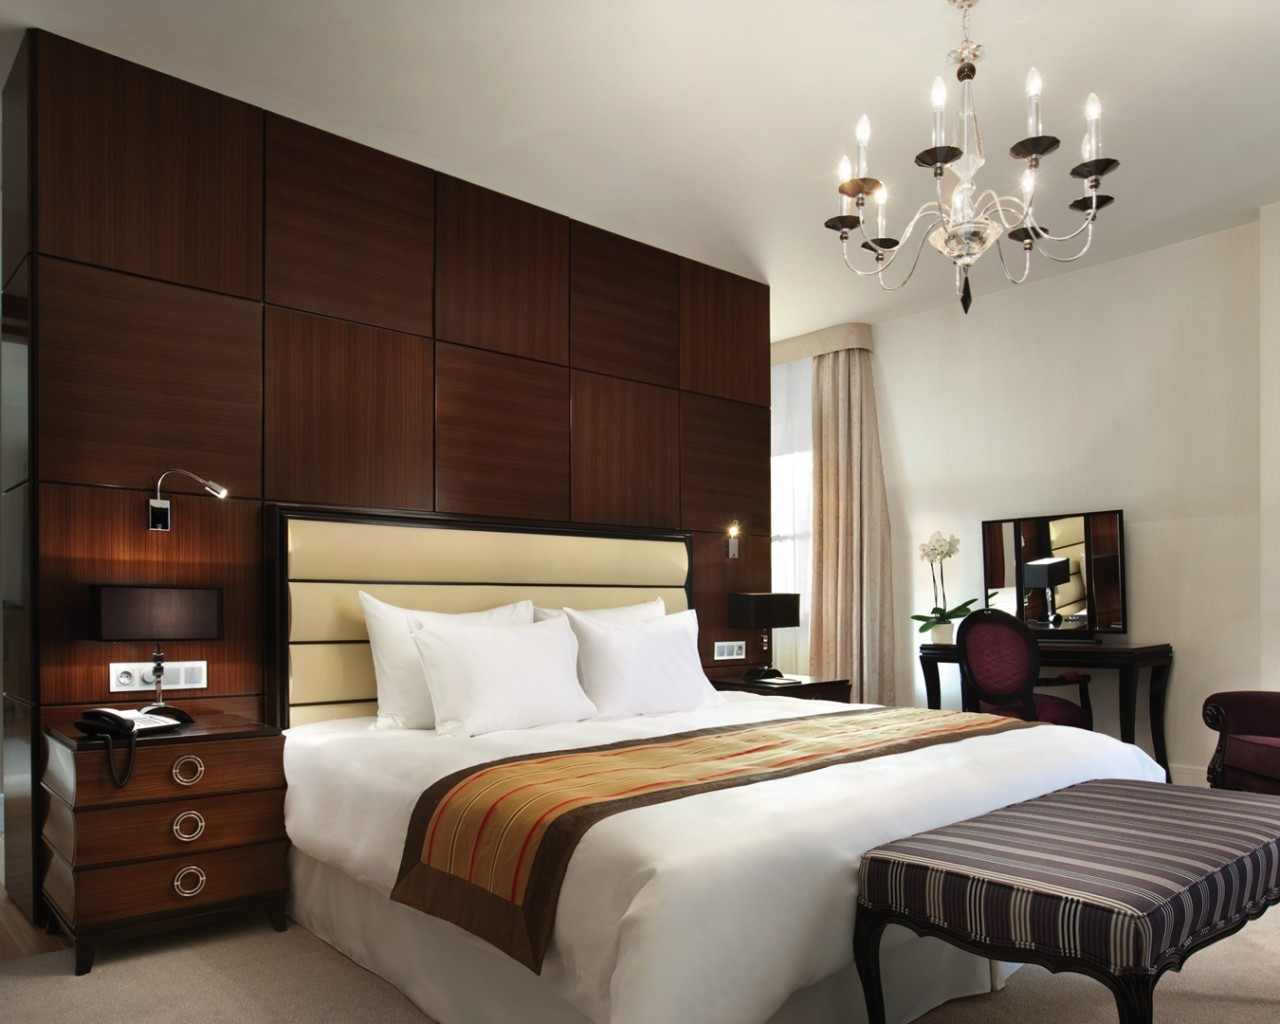 Grand Suite im Kempinski Hotel Cathedral Square Vilnius